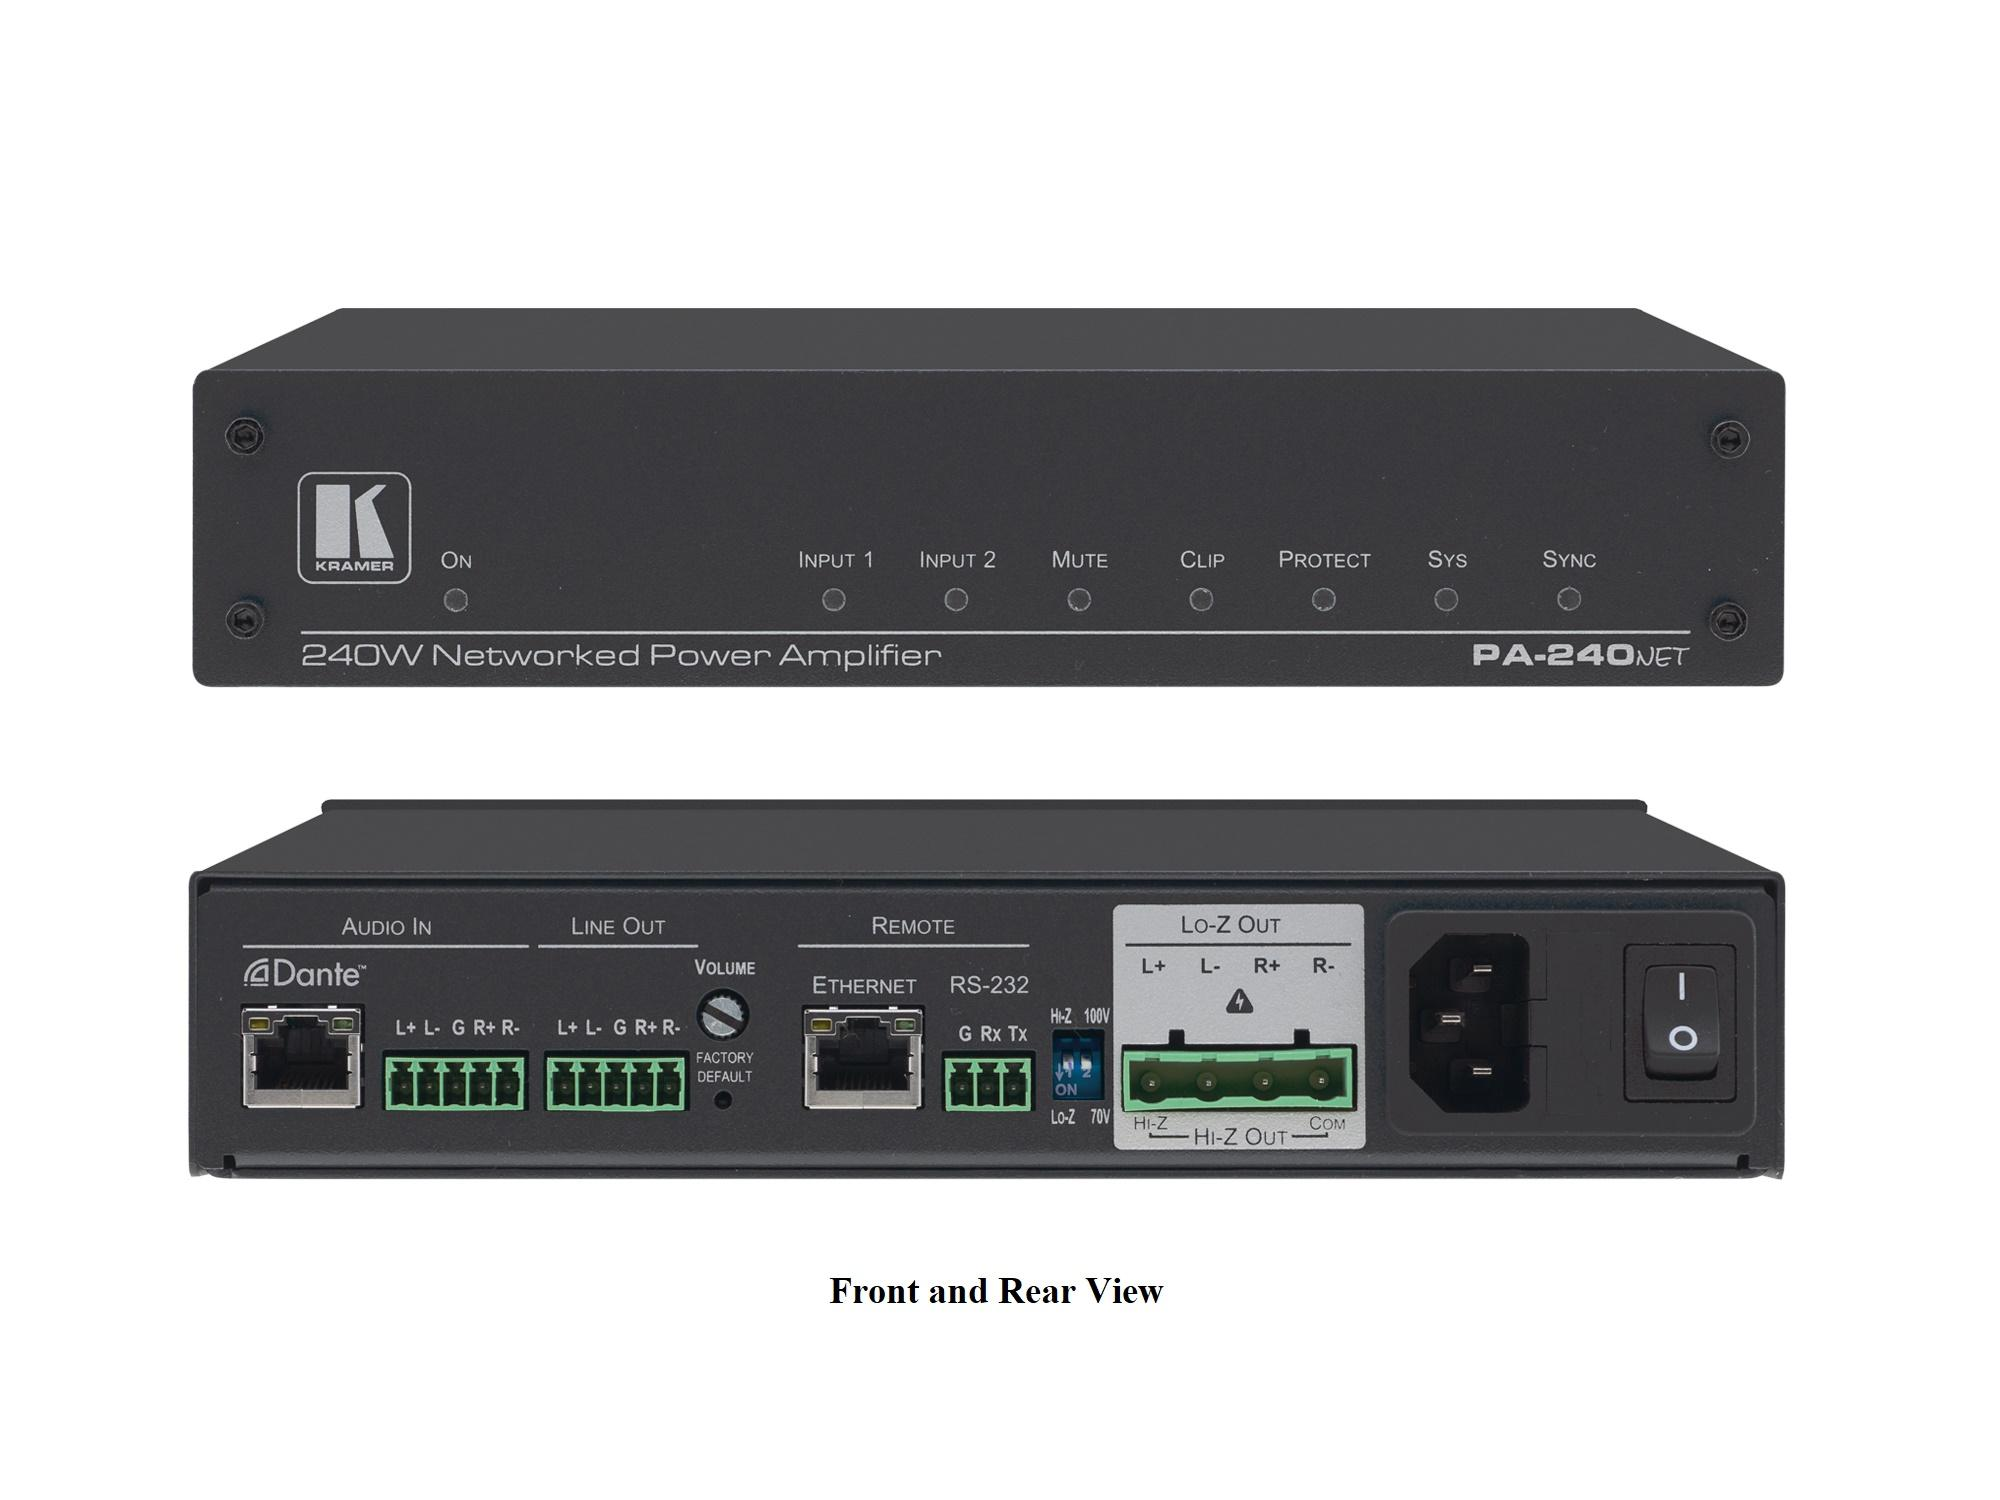 PA-240Net 240W Networked Power Amplifier by Kramer